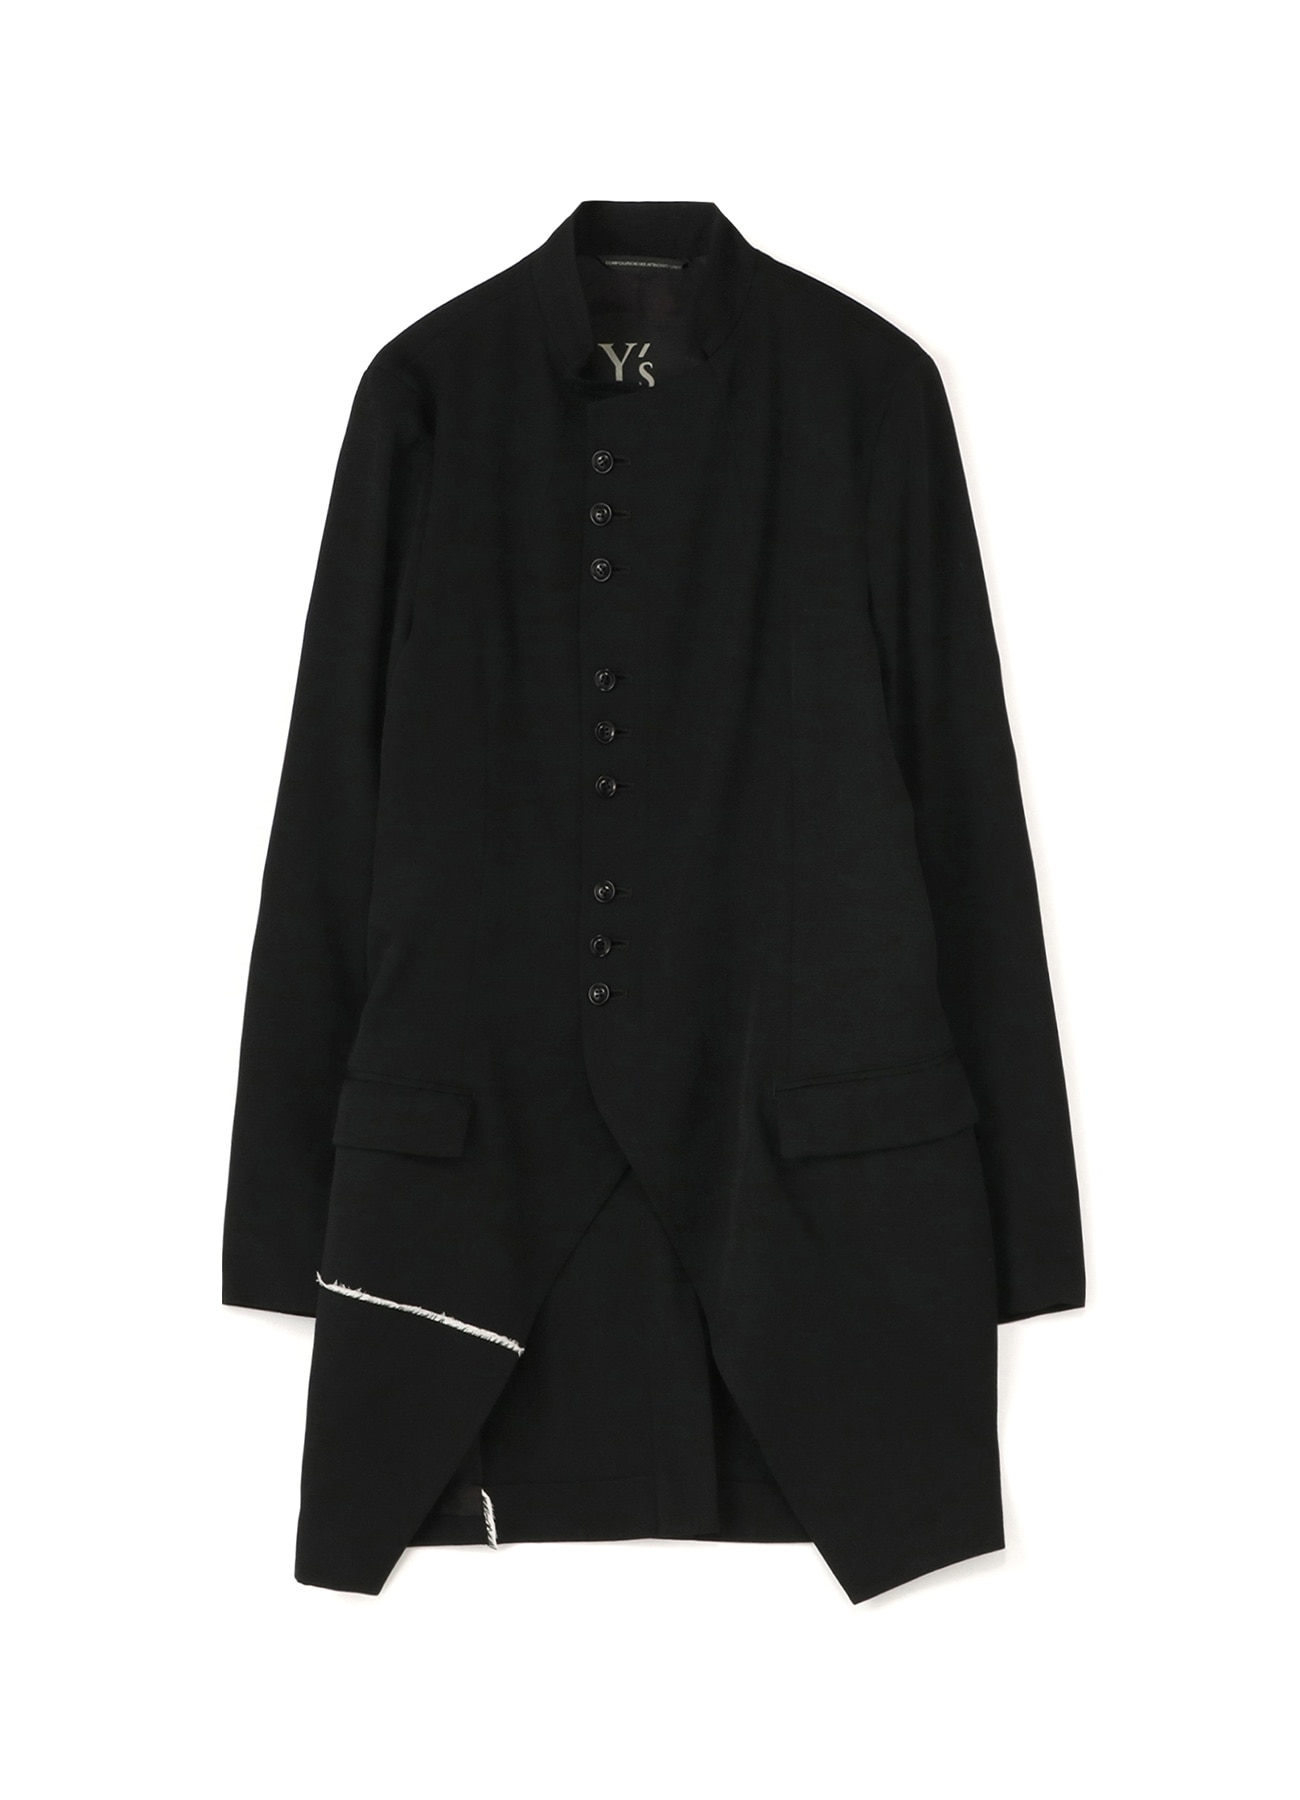 WOOL GABARDINE U-STAND COLLAR LONG JACKET